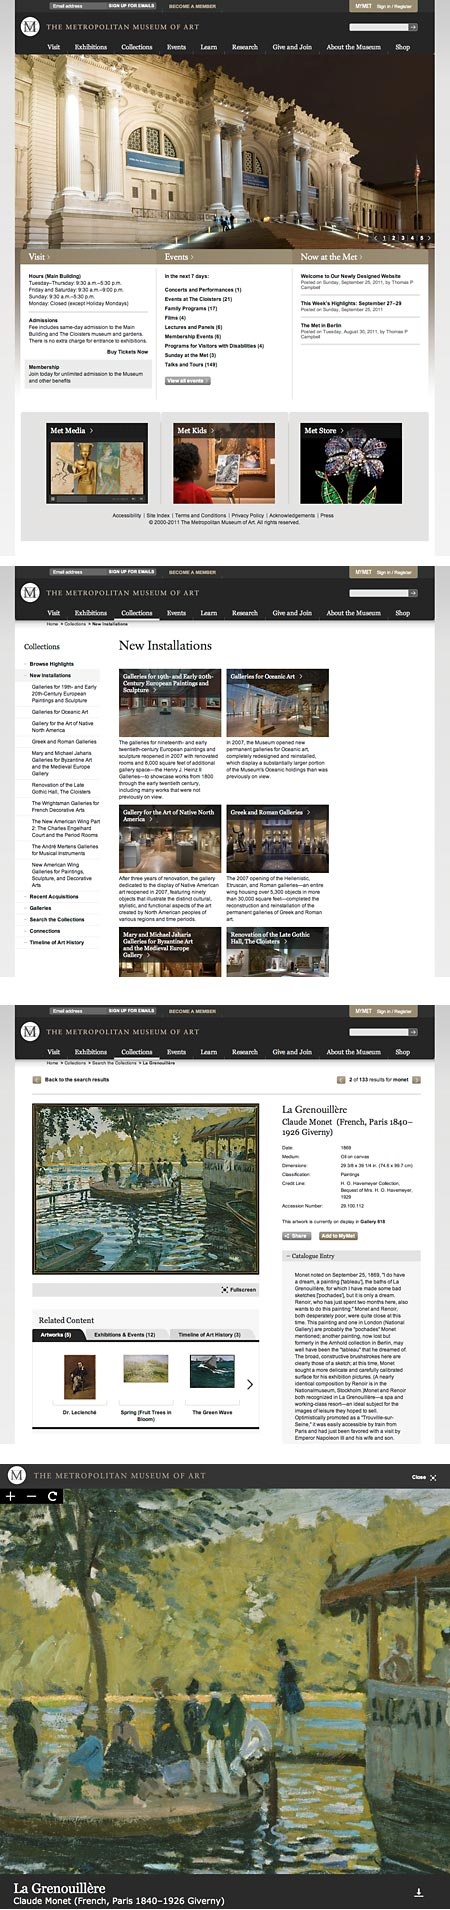 New Metropolitan Museum of Art website